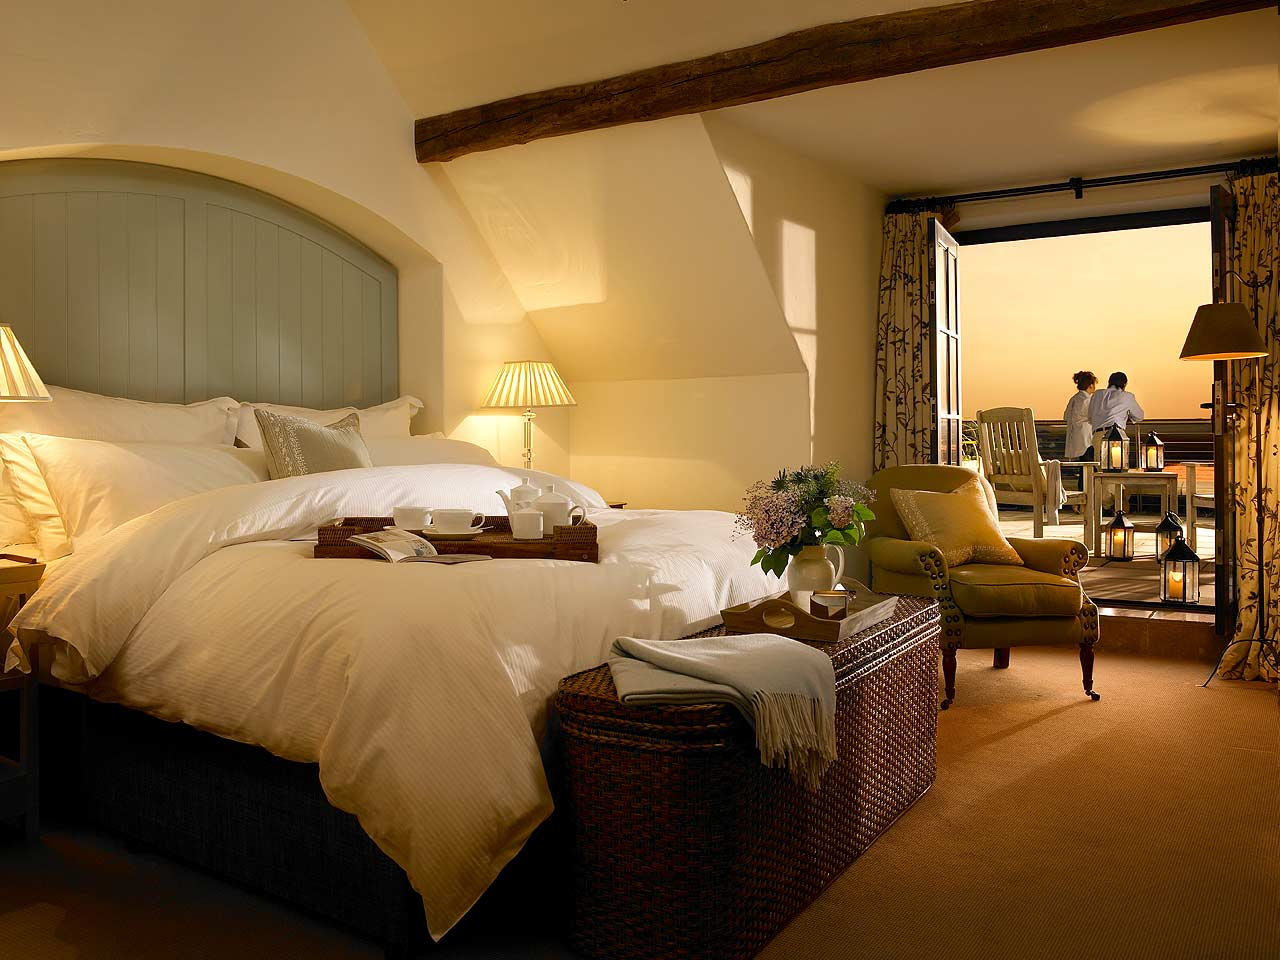 Lodge at doonbeg county clare ireland luxandtravel for Amazing luxury hotels